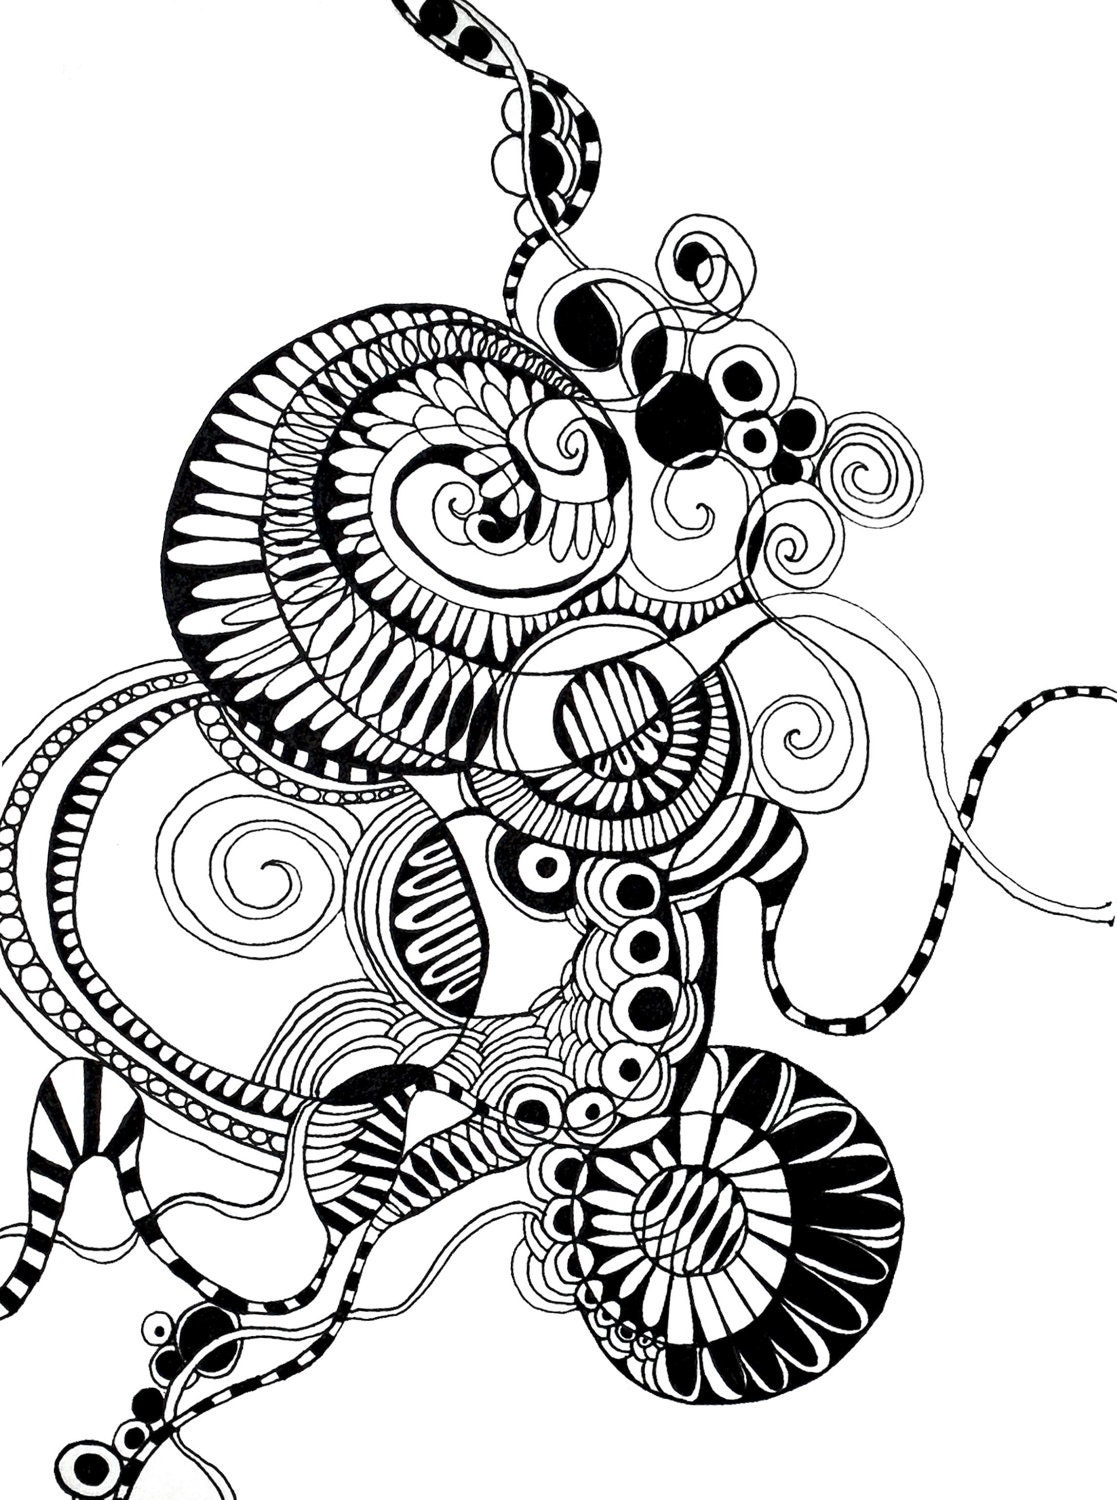 Line Art Ink : Print of an original ink line drawing evolve by mateasinkovec